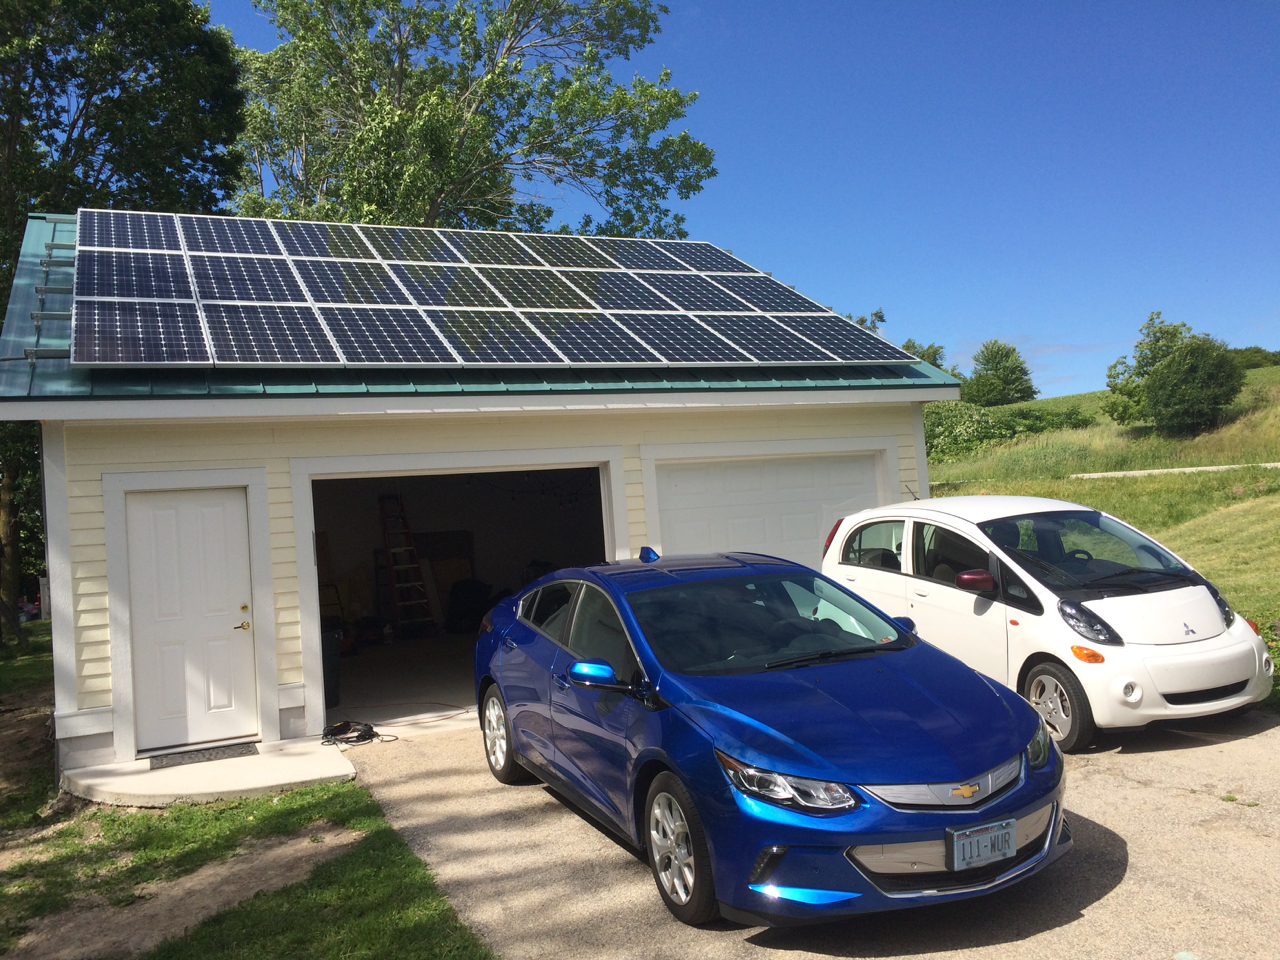 Bens Solar Garage Ford Panel Roof